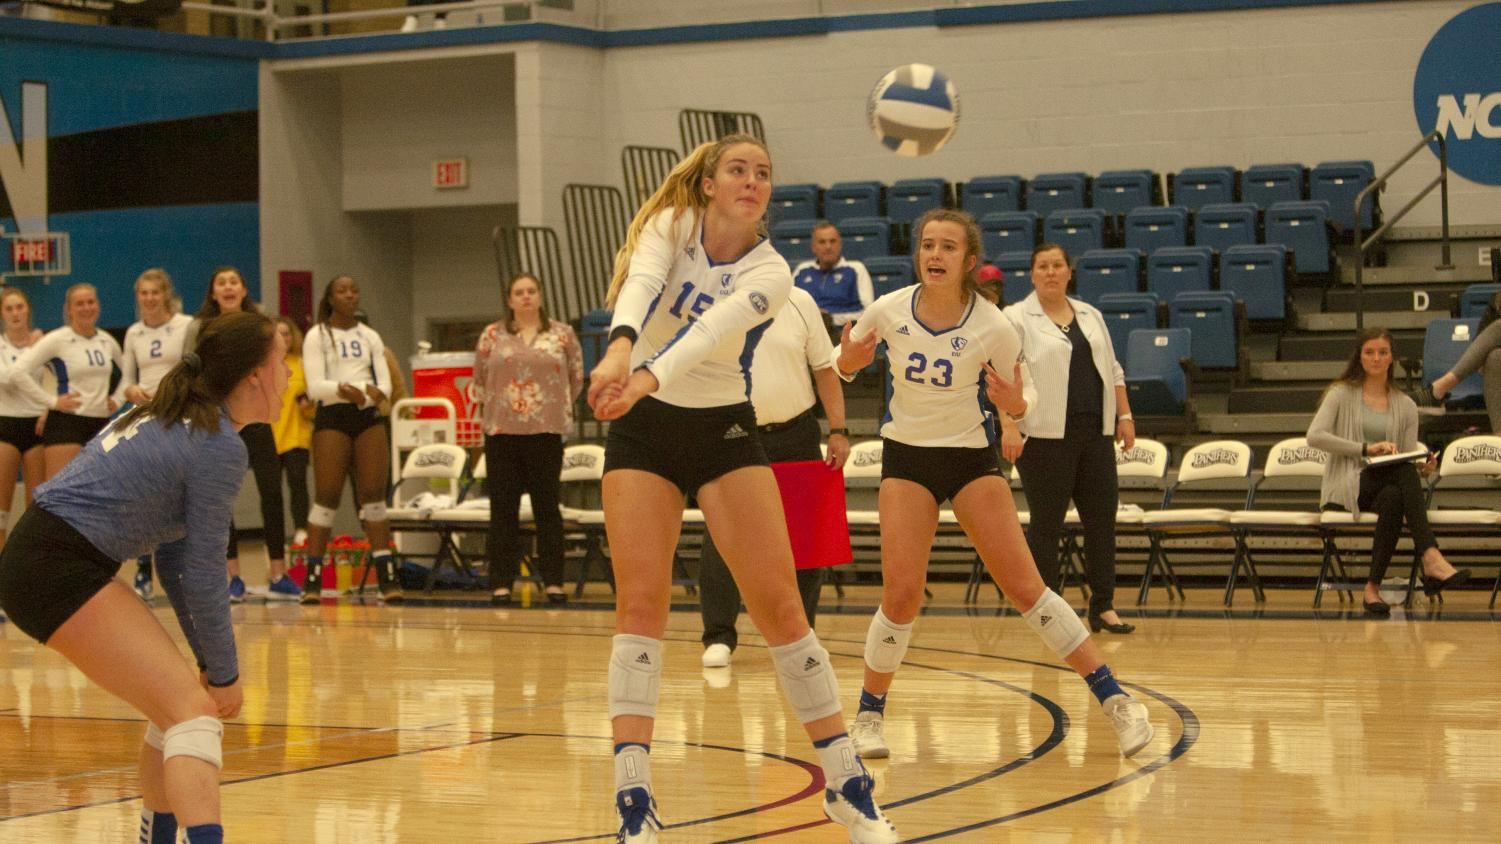 Eastern junior Laurel Bailey steps in front of a serve to make a pass against Southern Illinois Edwardsville Nov. 6 in Lantz Arena. Bailey had eight kills and 12 digs in the match, a 3-0 loss for the Panthers.